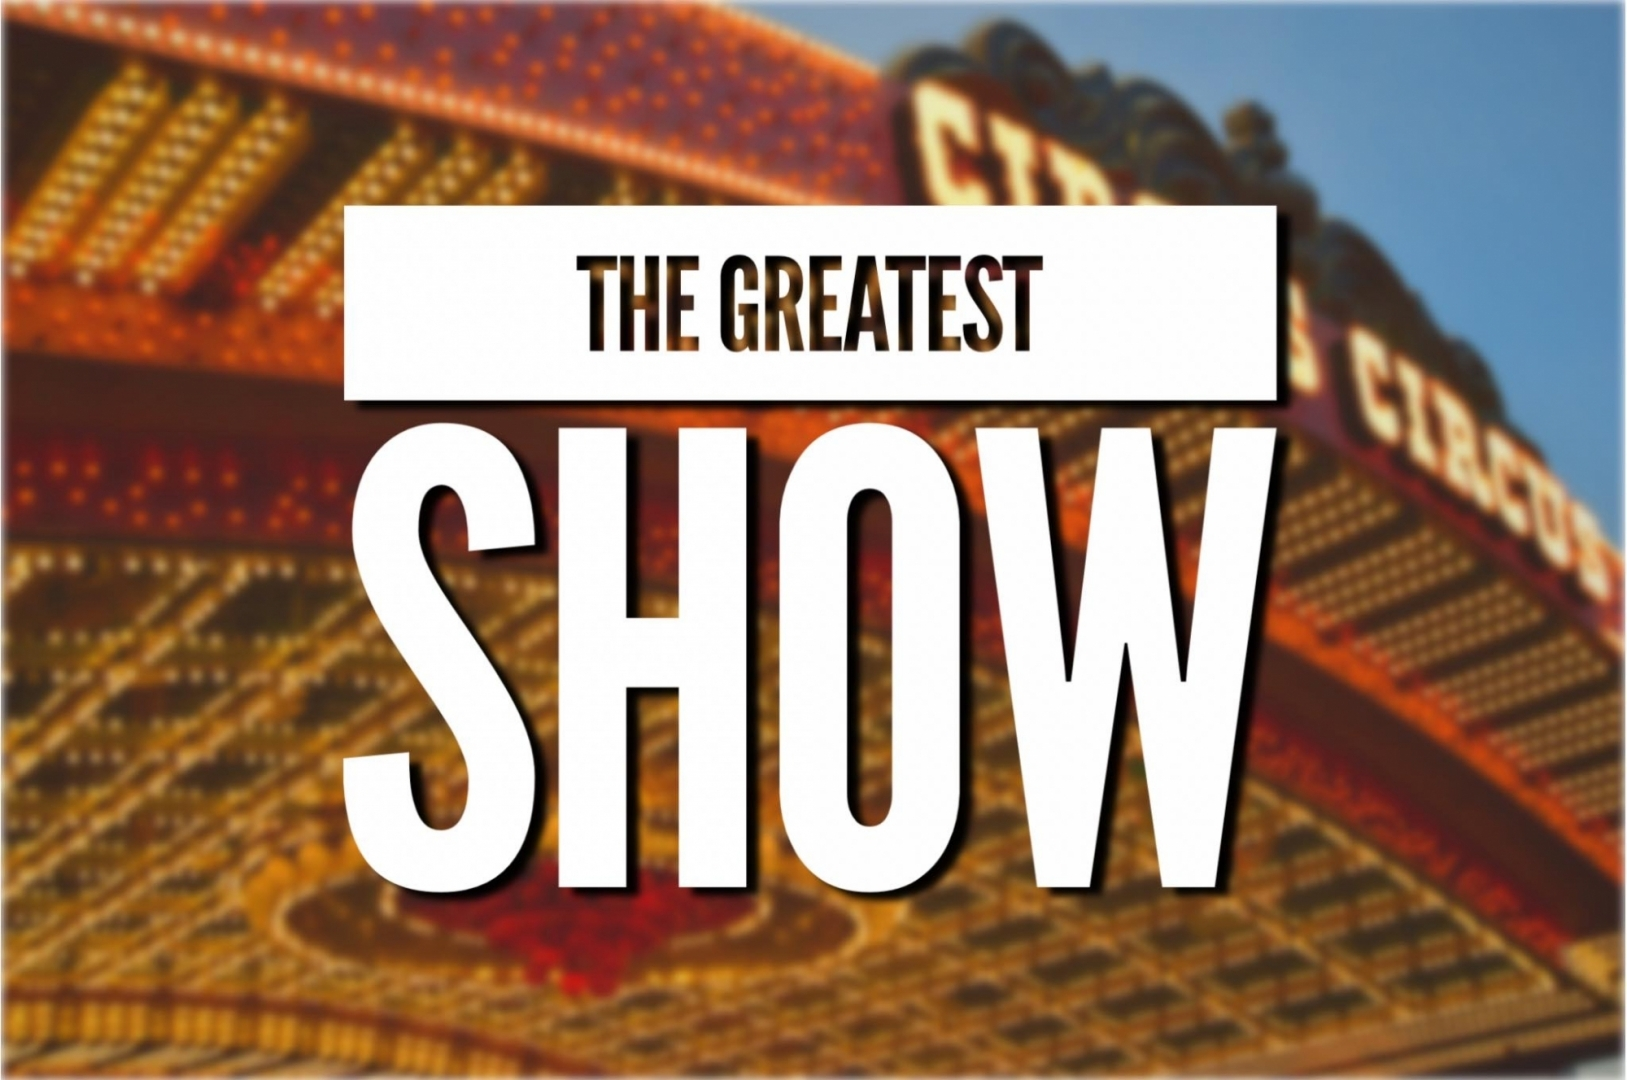 Show 8 - The Greatest Show